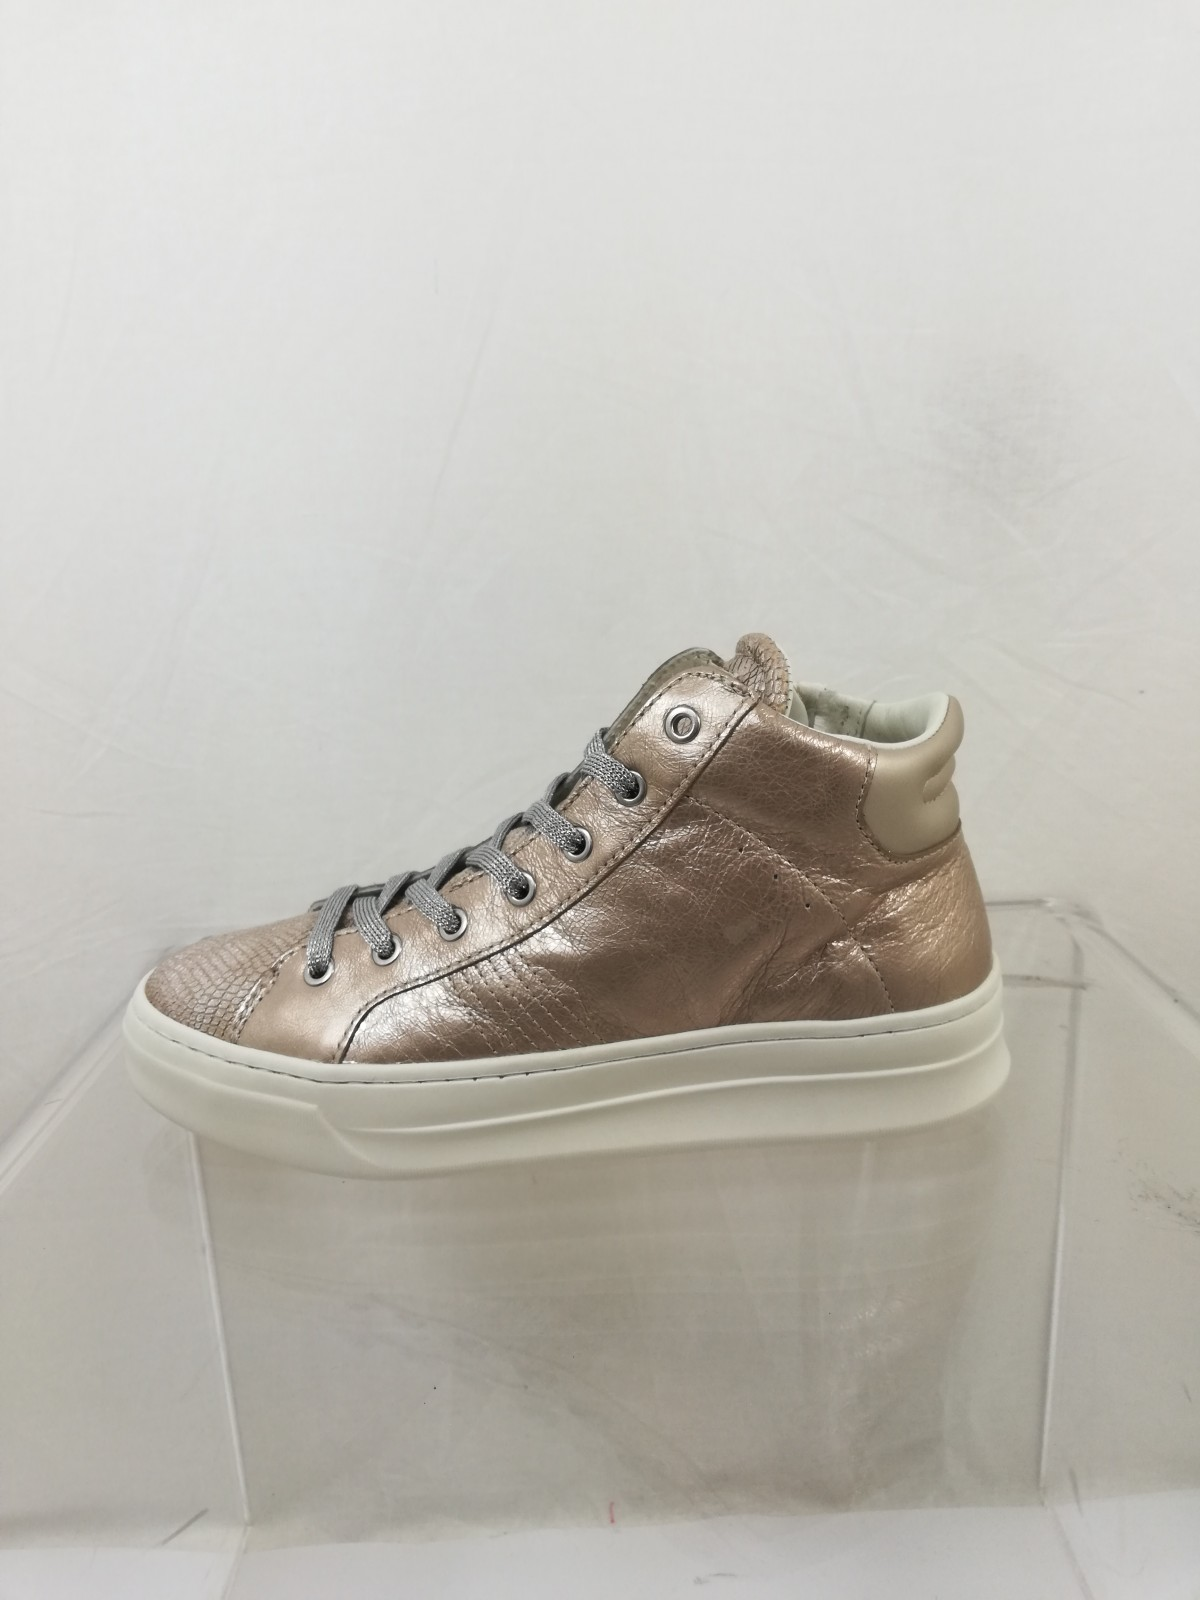 London Real SneakersMetallized Leather High Top EffectCrime WE2Ie9DYH